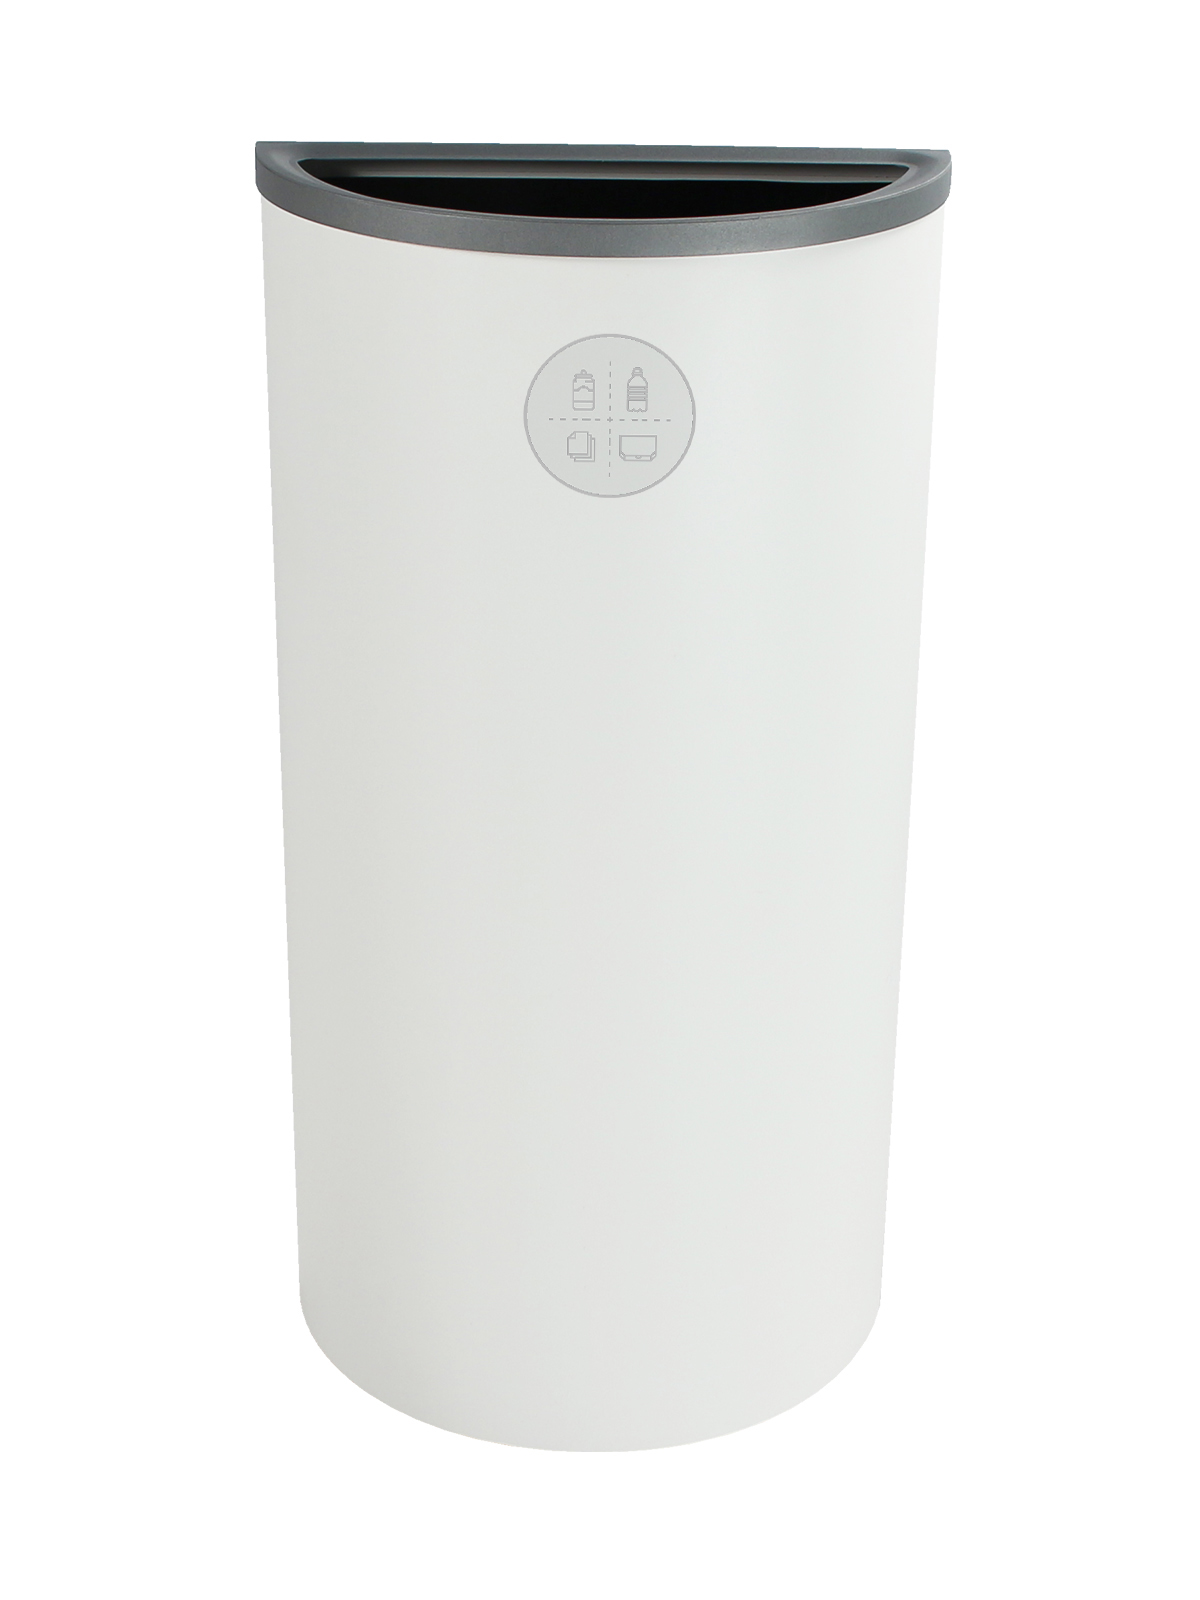 SPECTRUM - Single - Ellipse Slim - Mixed Recyclables - Full - White